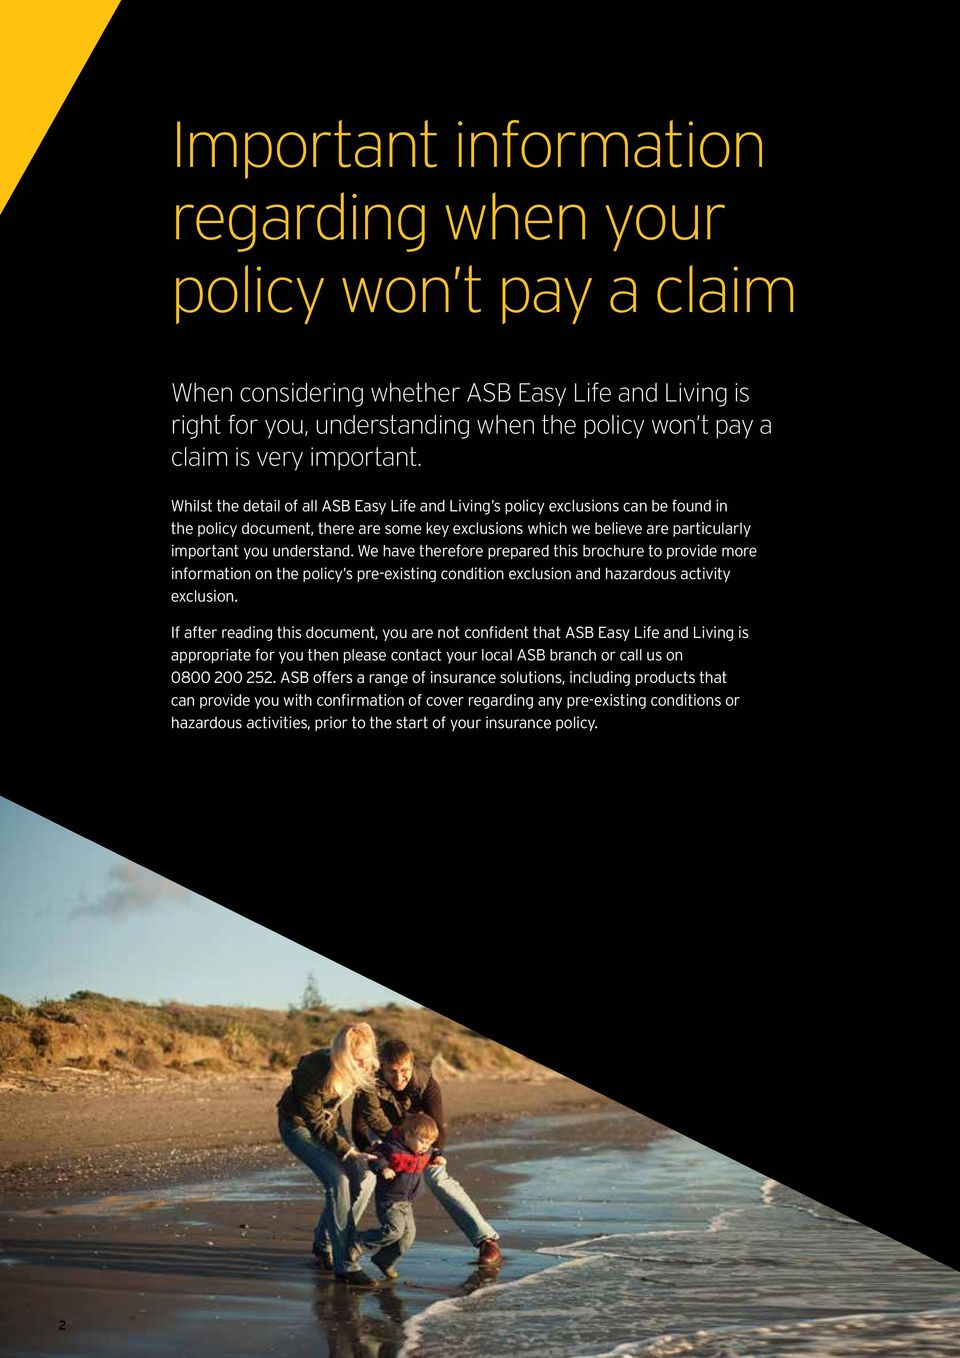 Whilst the detail of all ASB Easy Life and Living s policy exclusions can be found in the policy document, there are some key exclusions which we believe are particularly important you understand.